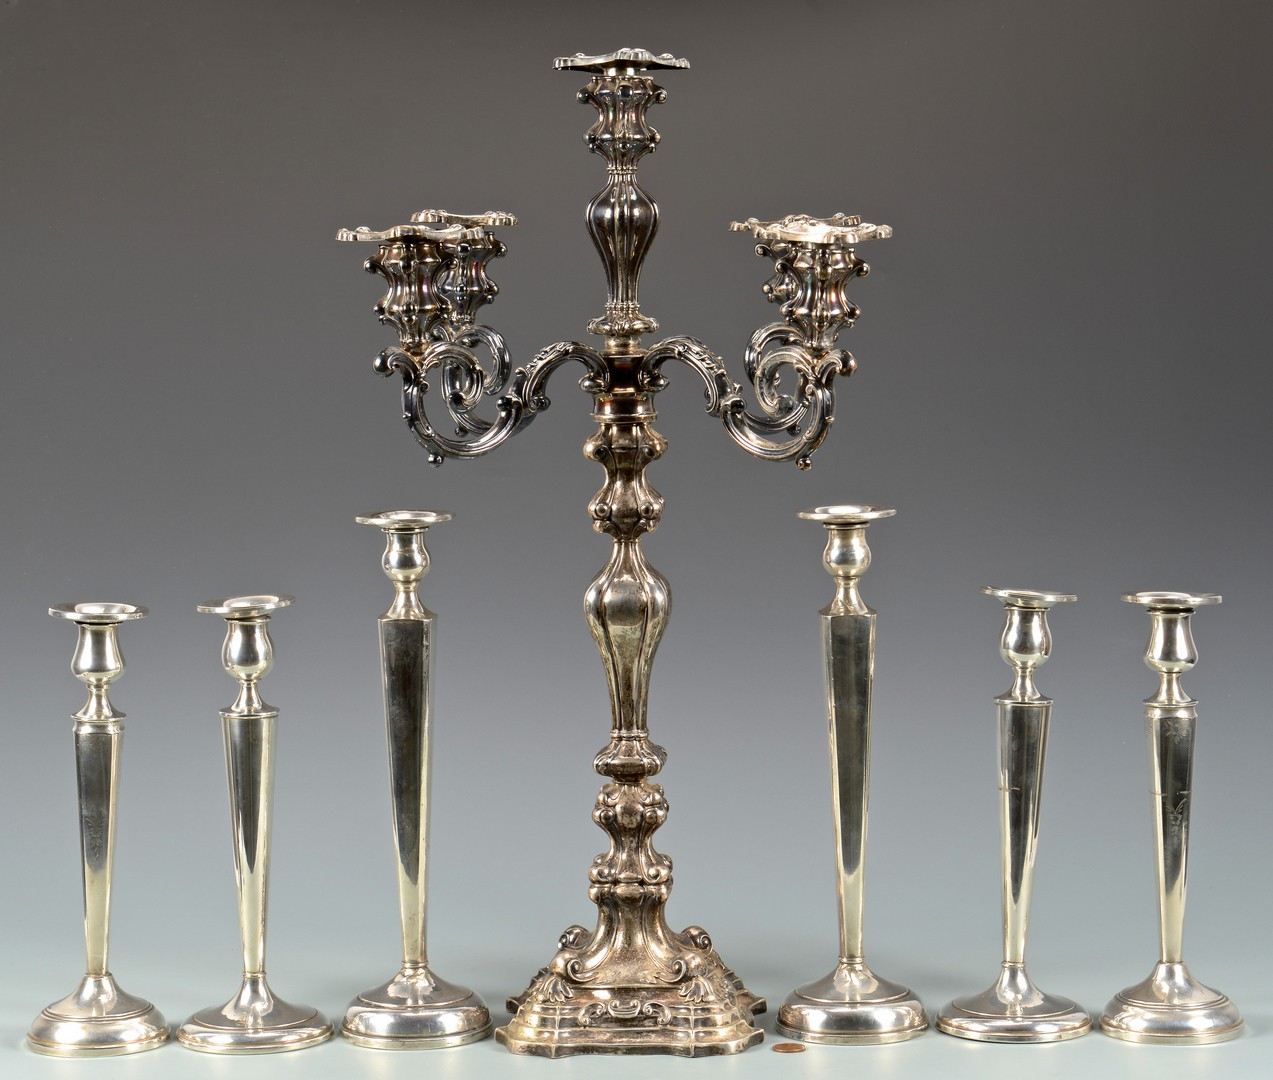 Lot 893: 6 Sterling Candlesticks & Silver Candelabra